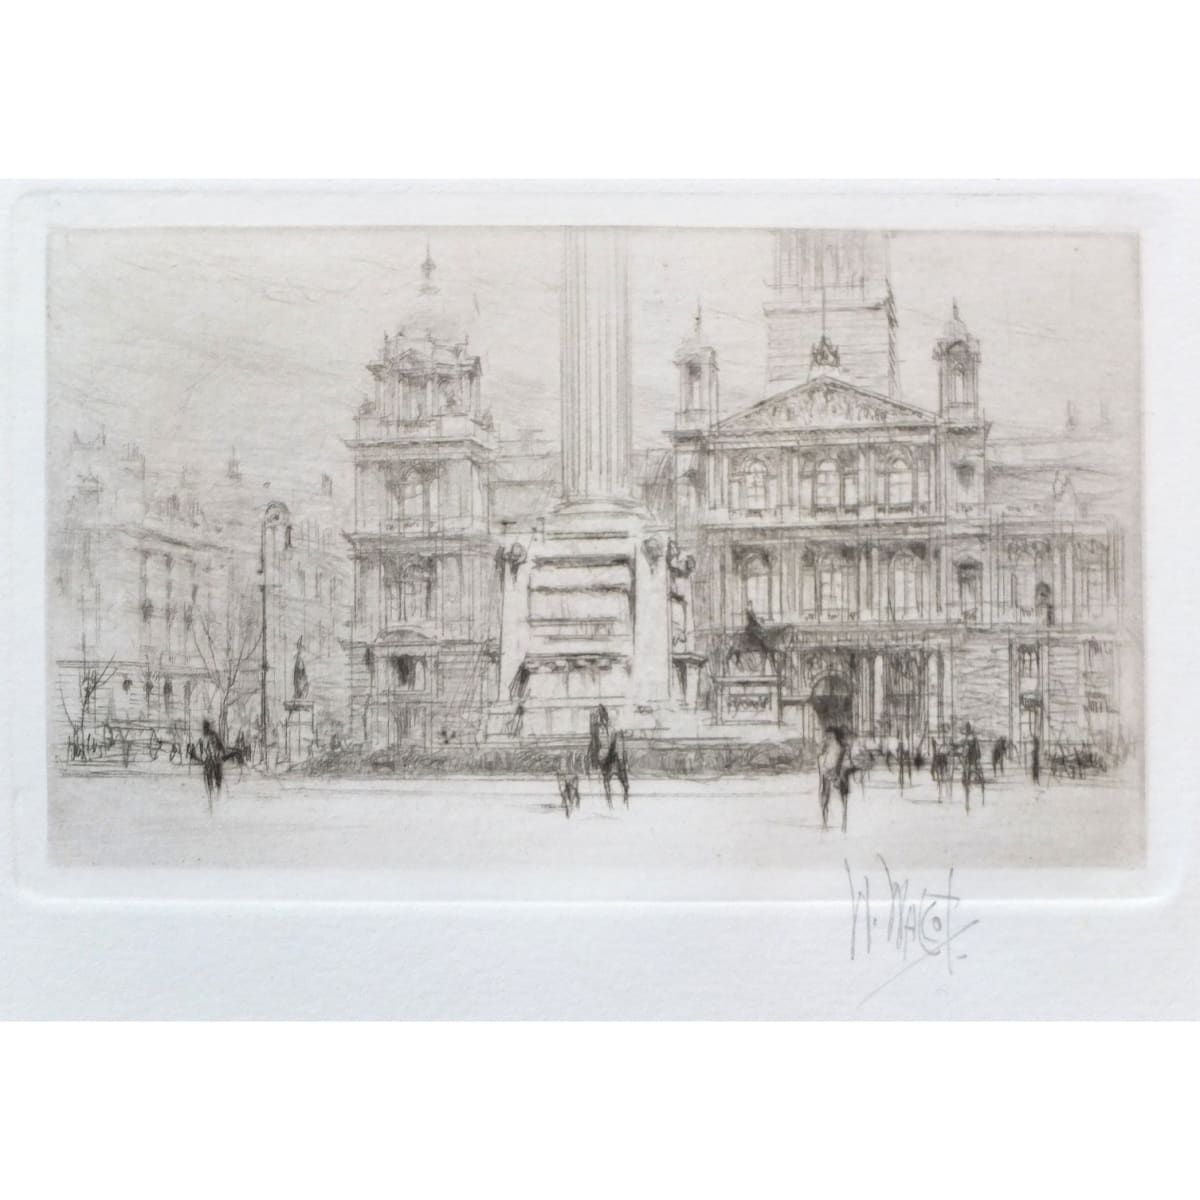 William Walcot Municipal Buildings, Glasgow, 1918 signed in pencil to margin etching and drypoint plate size: 2 5/8 x 4 1/4 inches; sheet size: 9 1/8 x 11 1/8 inches